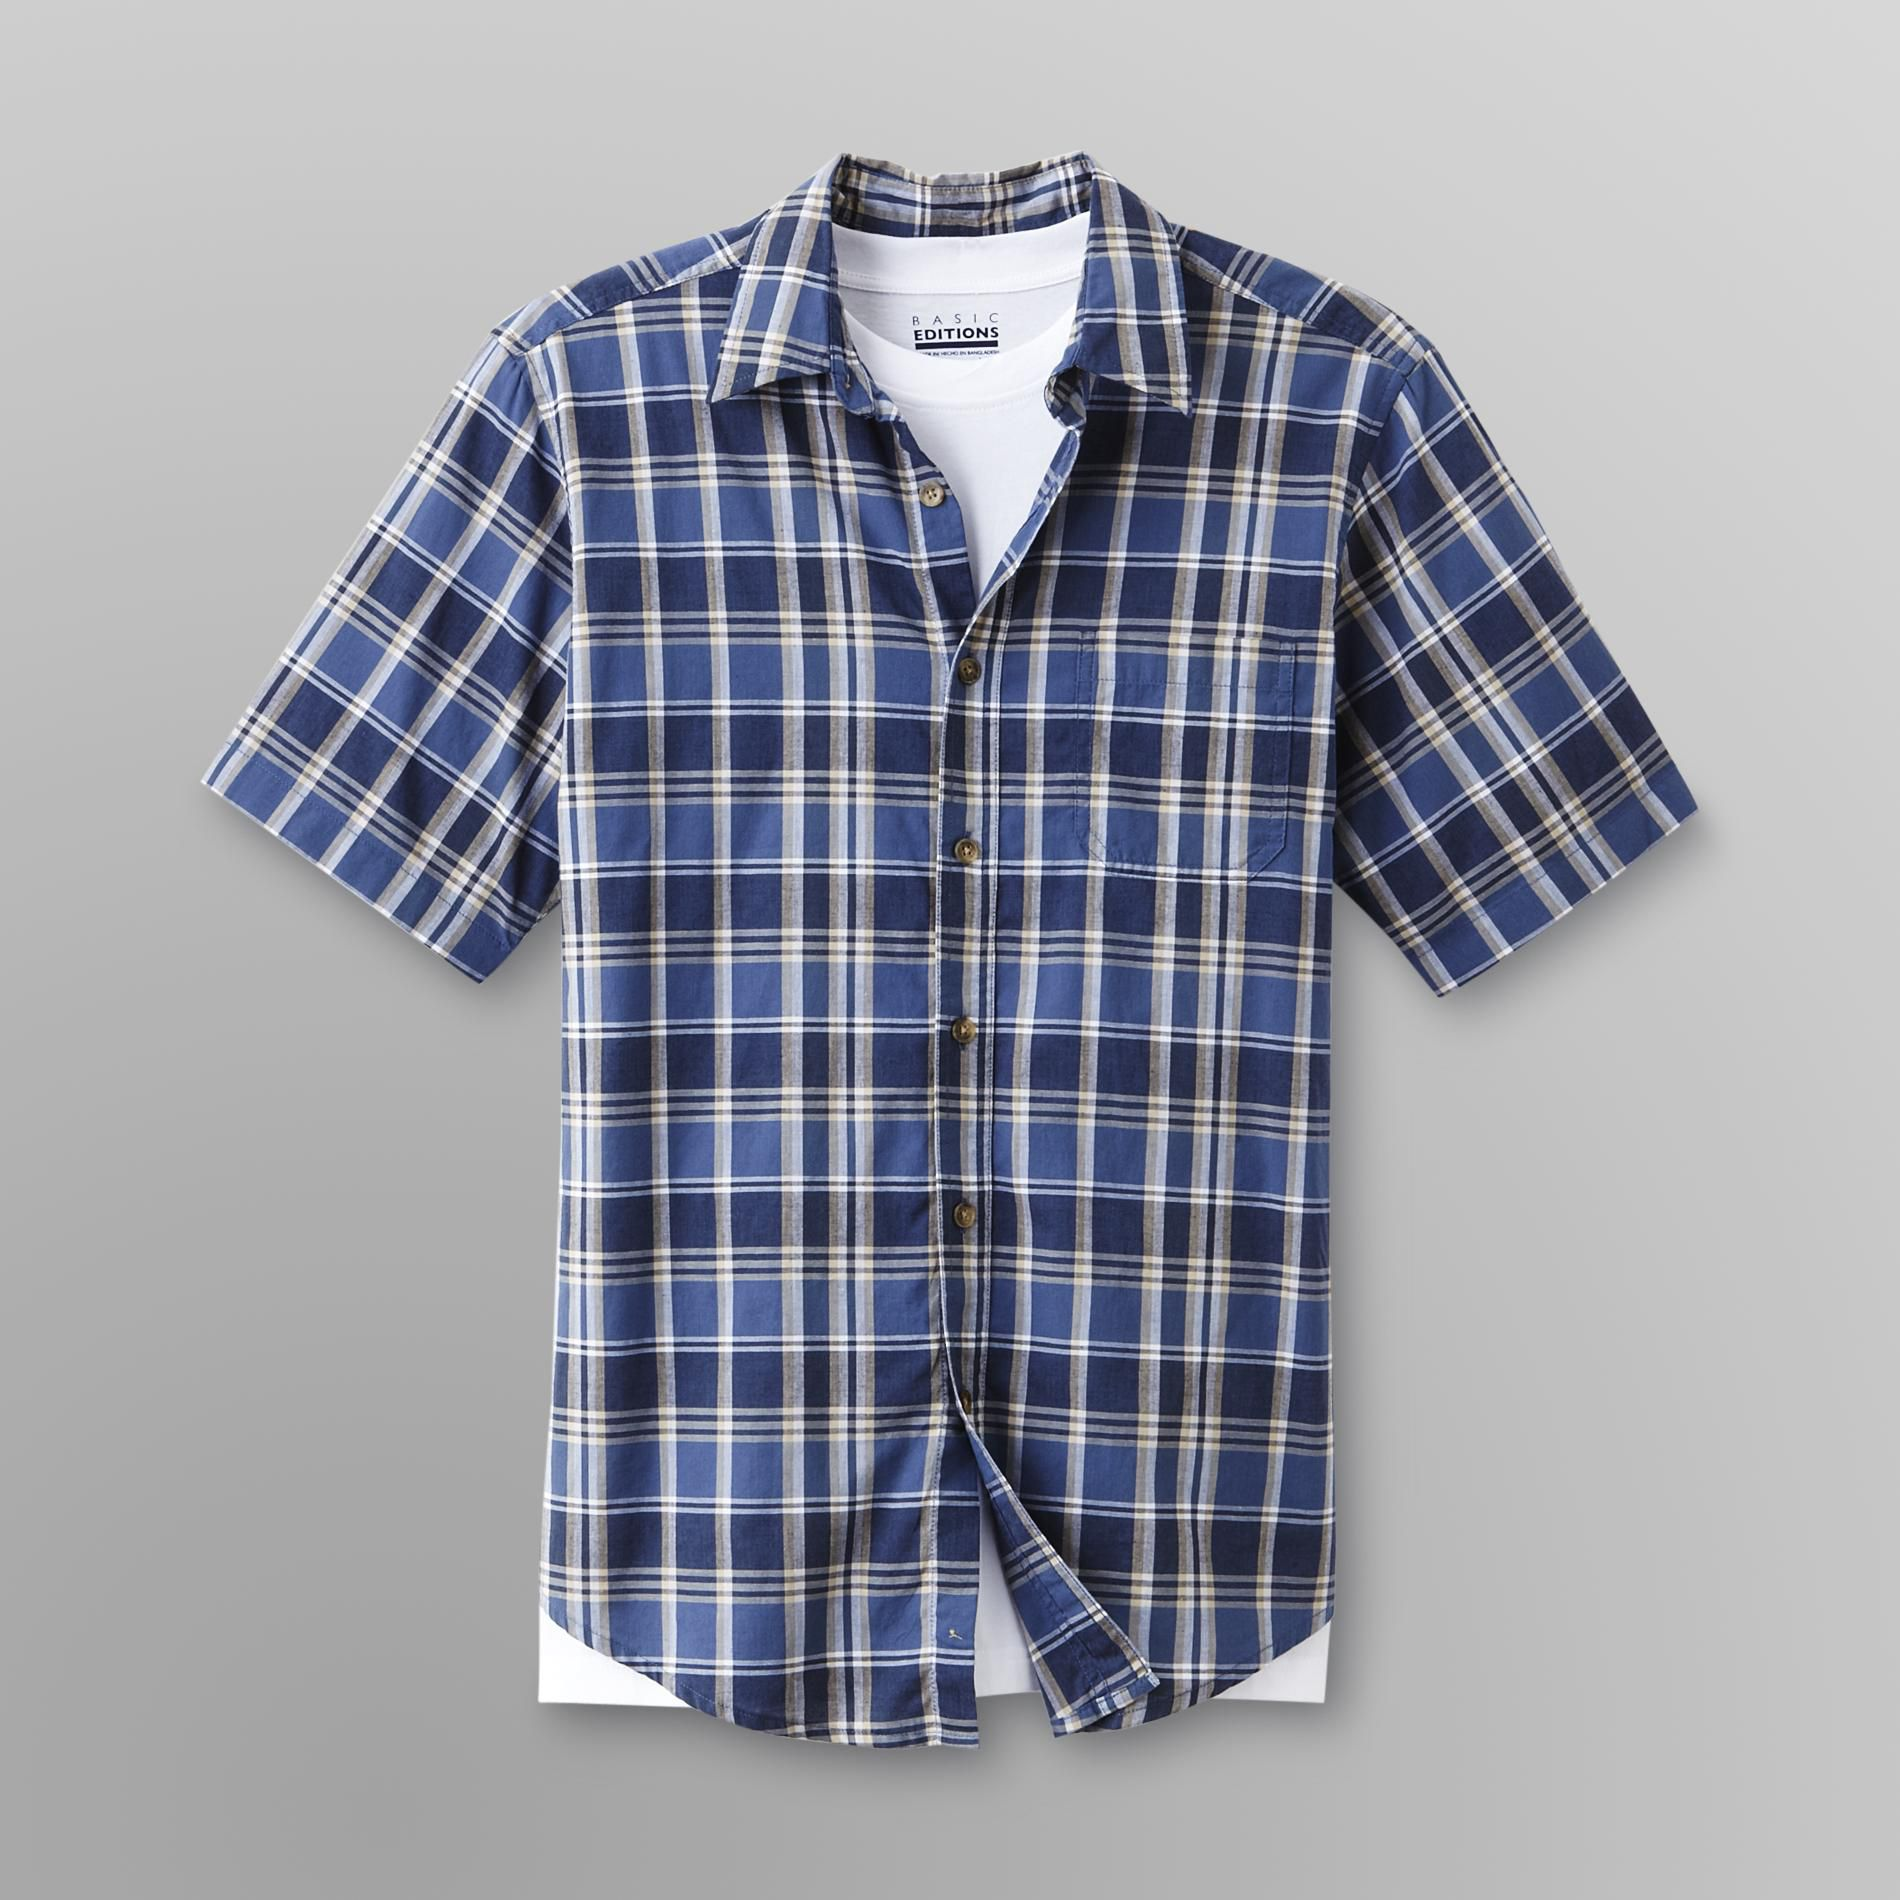 Basic Editions Men's Layered Shirt & T-Shirt at Kmart.com